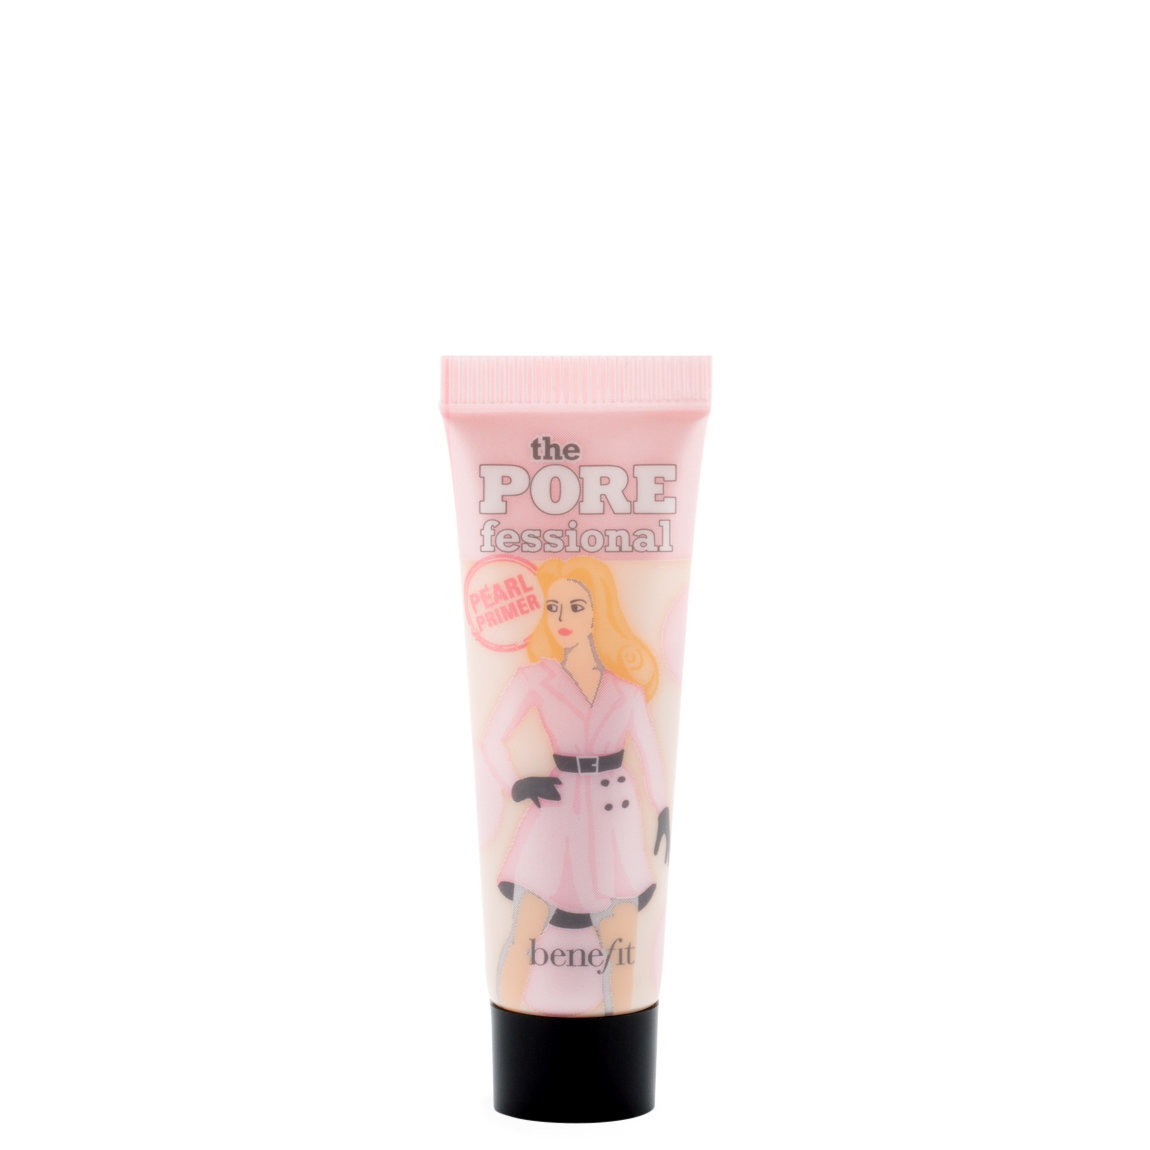 Benefit Cosmetics The POREfessional Pearl Primer Mini product smear.